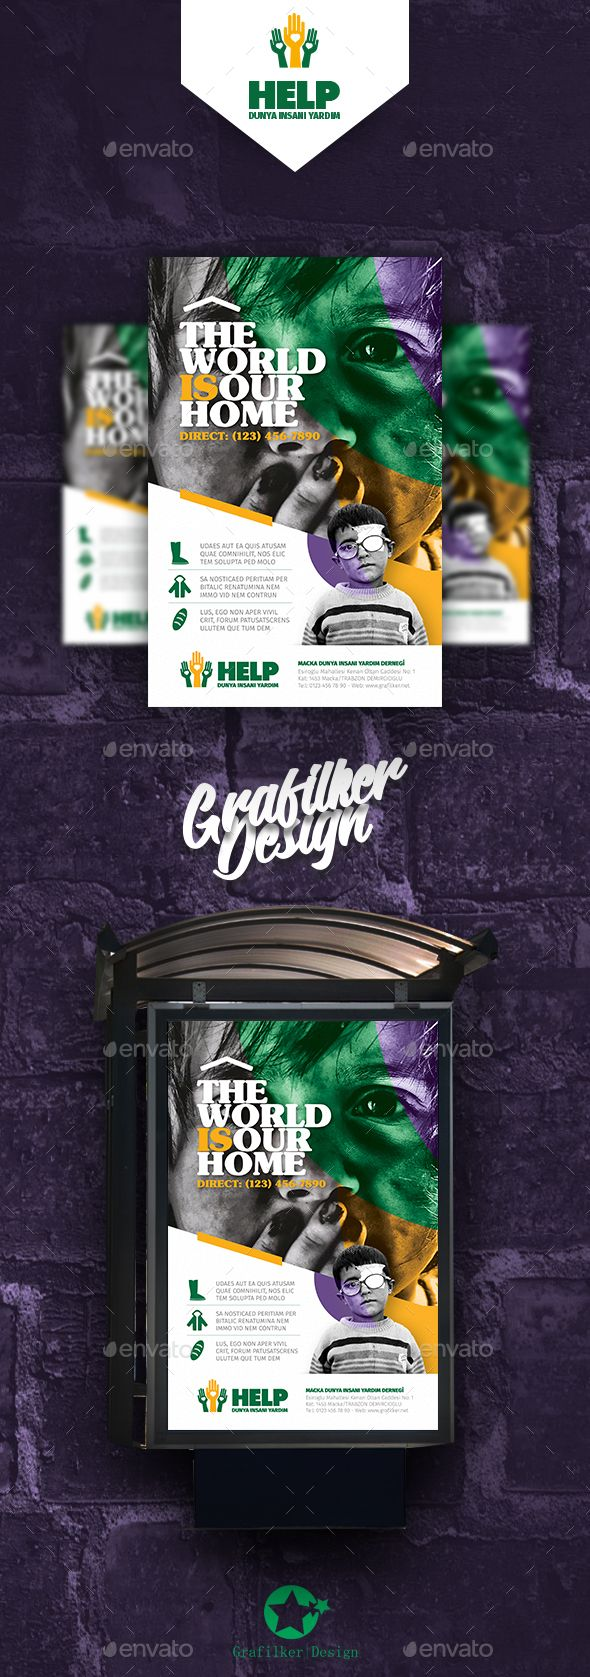 Charity Poster Templates — Photoshop PSD #foster #talent • Download ➝ https://graphicriver.net/item/charity-poster-templates/21429163?ref=pxcr